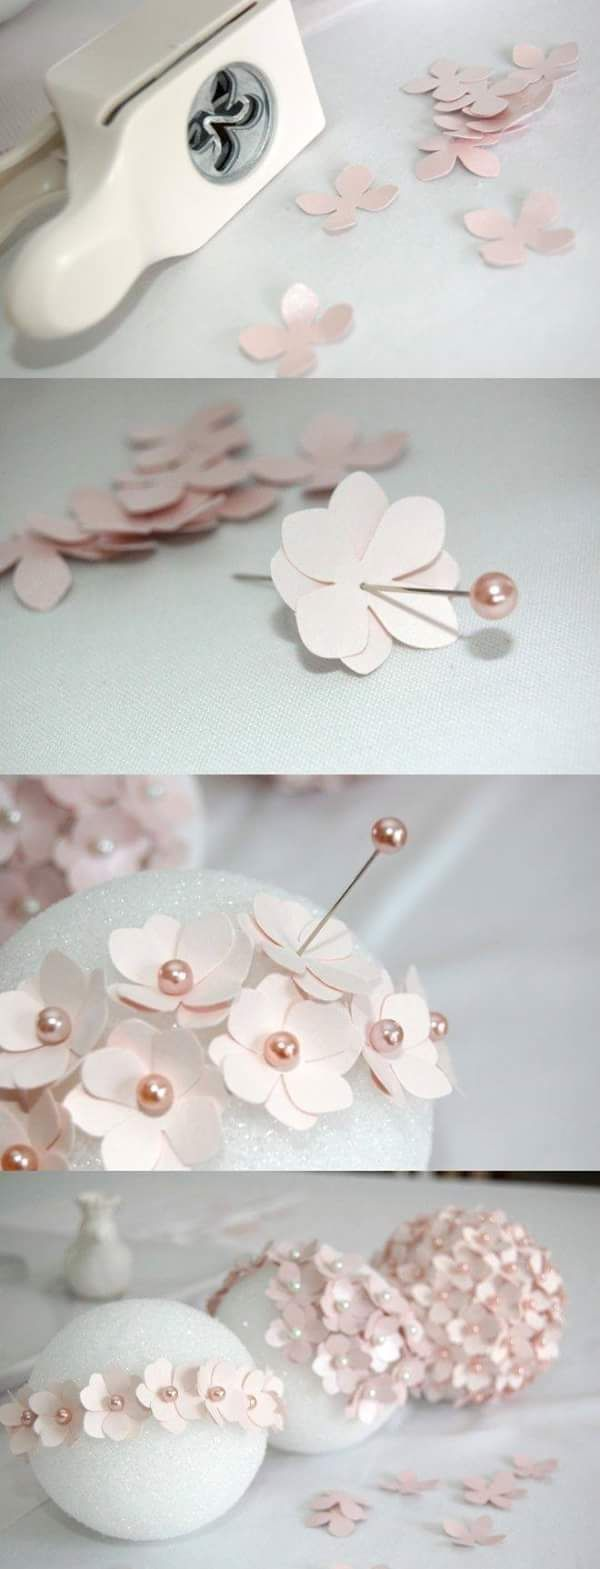 Very delicate and feminine ㅡ can be used in a variety of different types of even ... - #articles #of #feminine #can # very